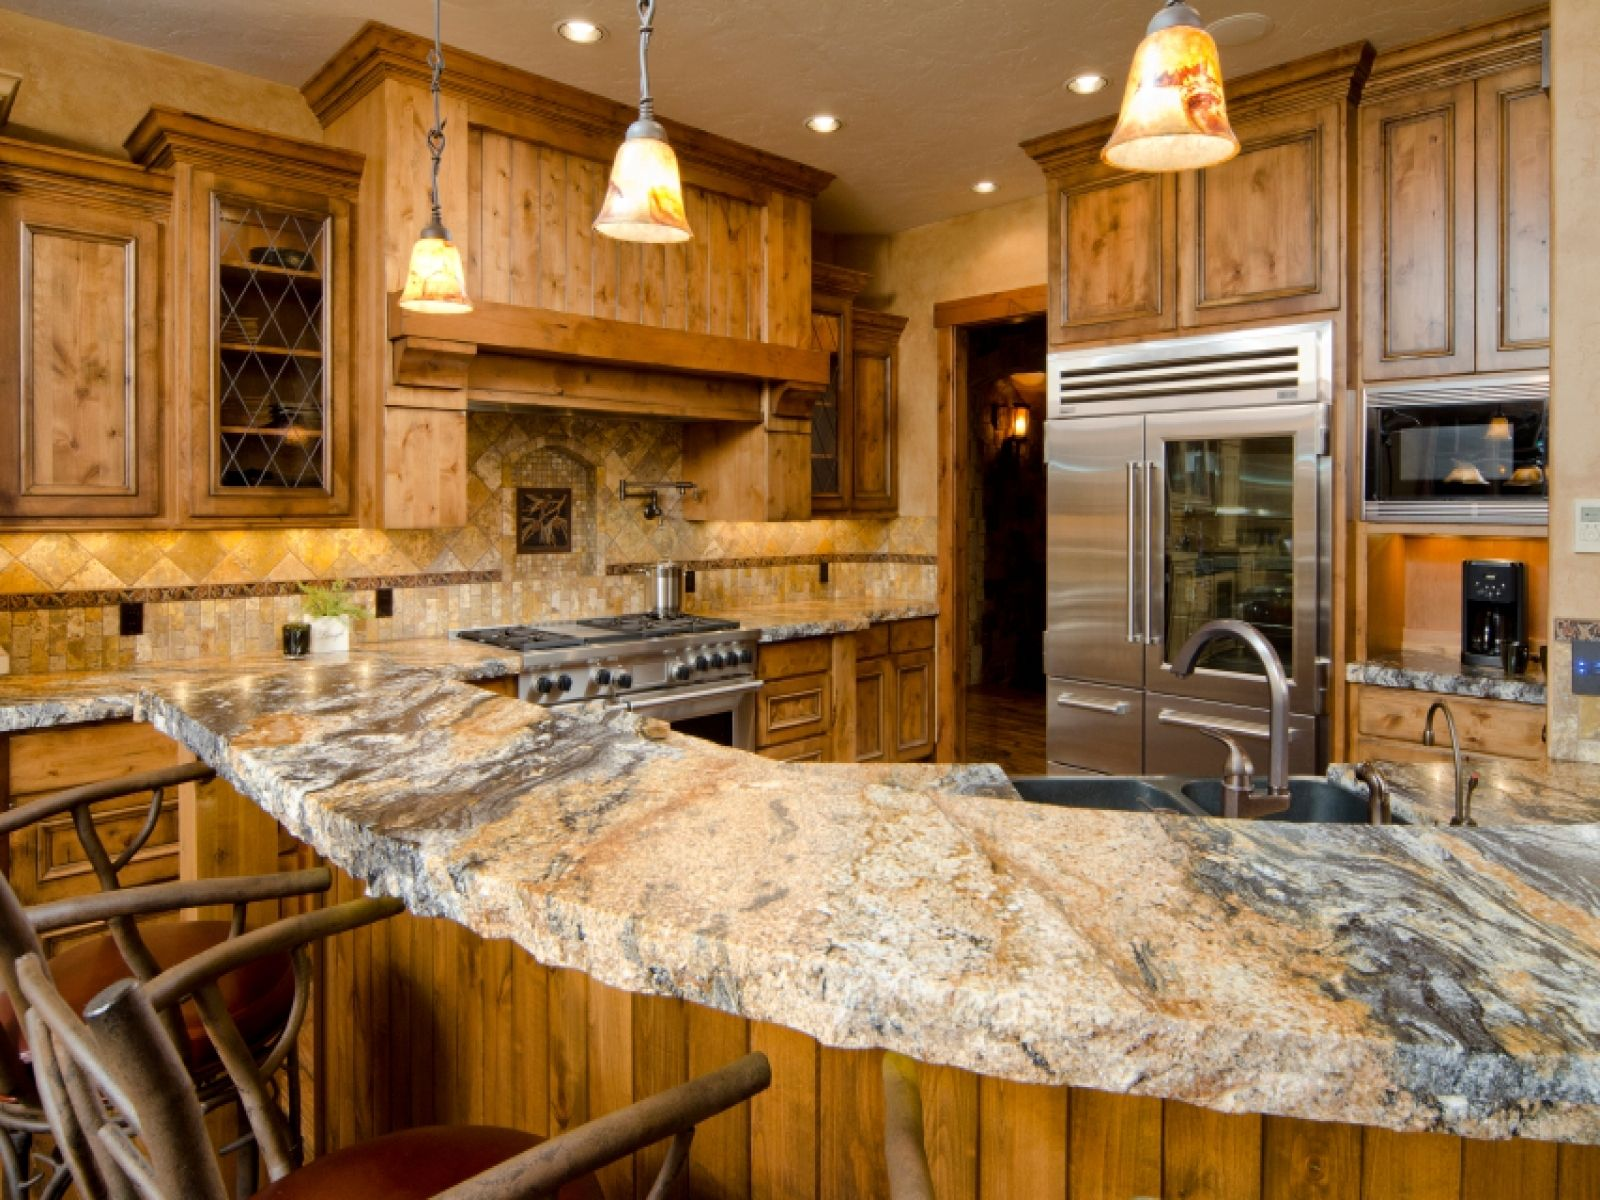 Decorating With Oak Cabinets | Kitchen Countertops | Pics Picture Of Granite  Countertops In Kitchens .